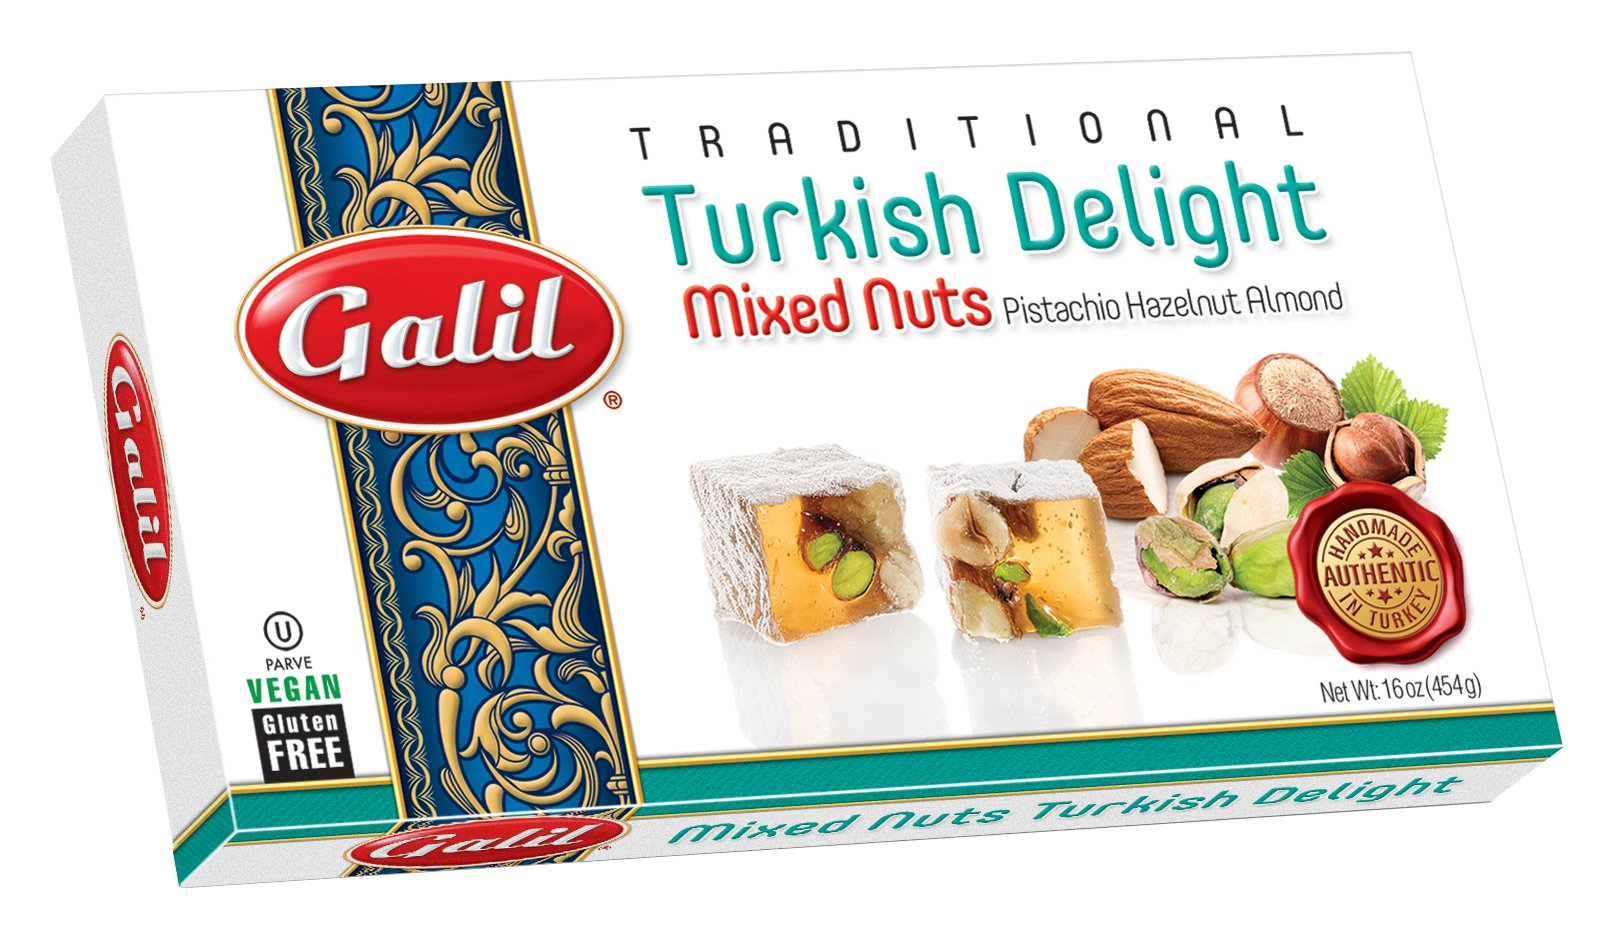 Galil Turkish Delight, Pistachio-Hazelnut-Almond, 16-Ounce Boxes (Pack of 4)